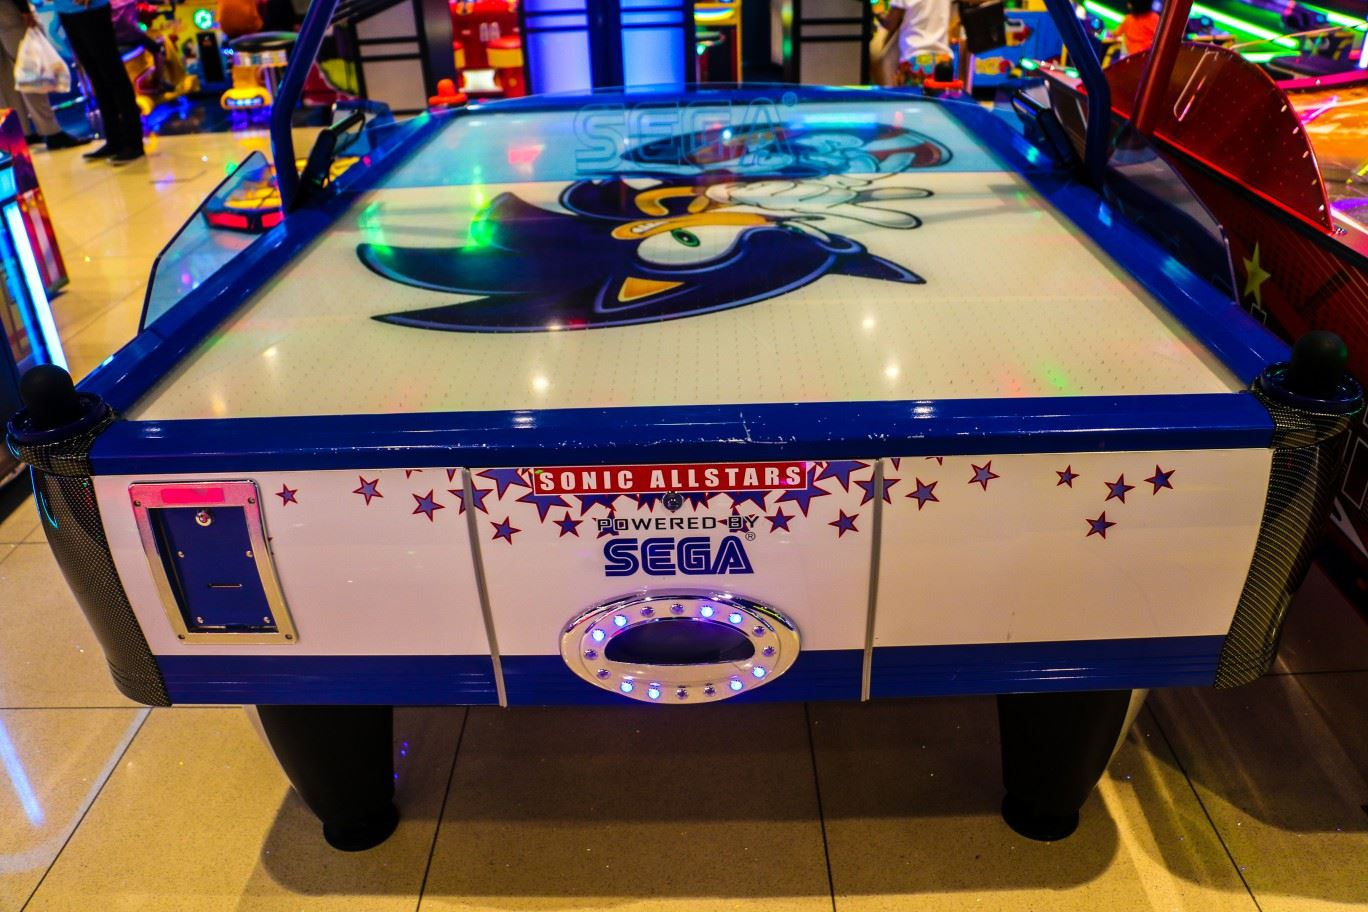 Sonic All Star Air Hockey game at Magic Planet City Centre Meaisem